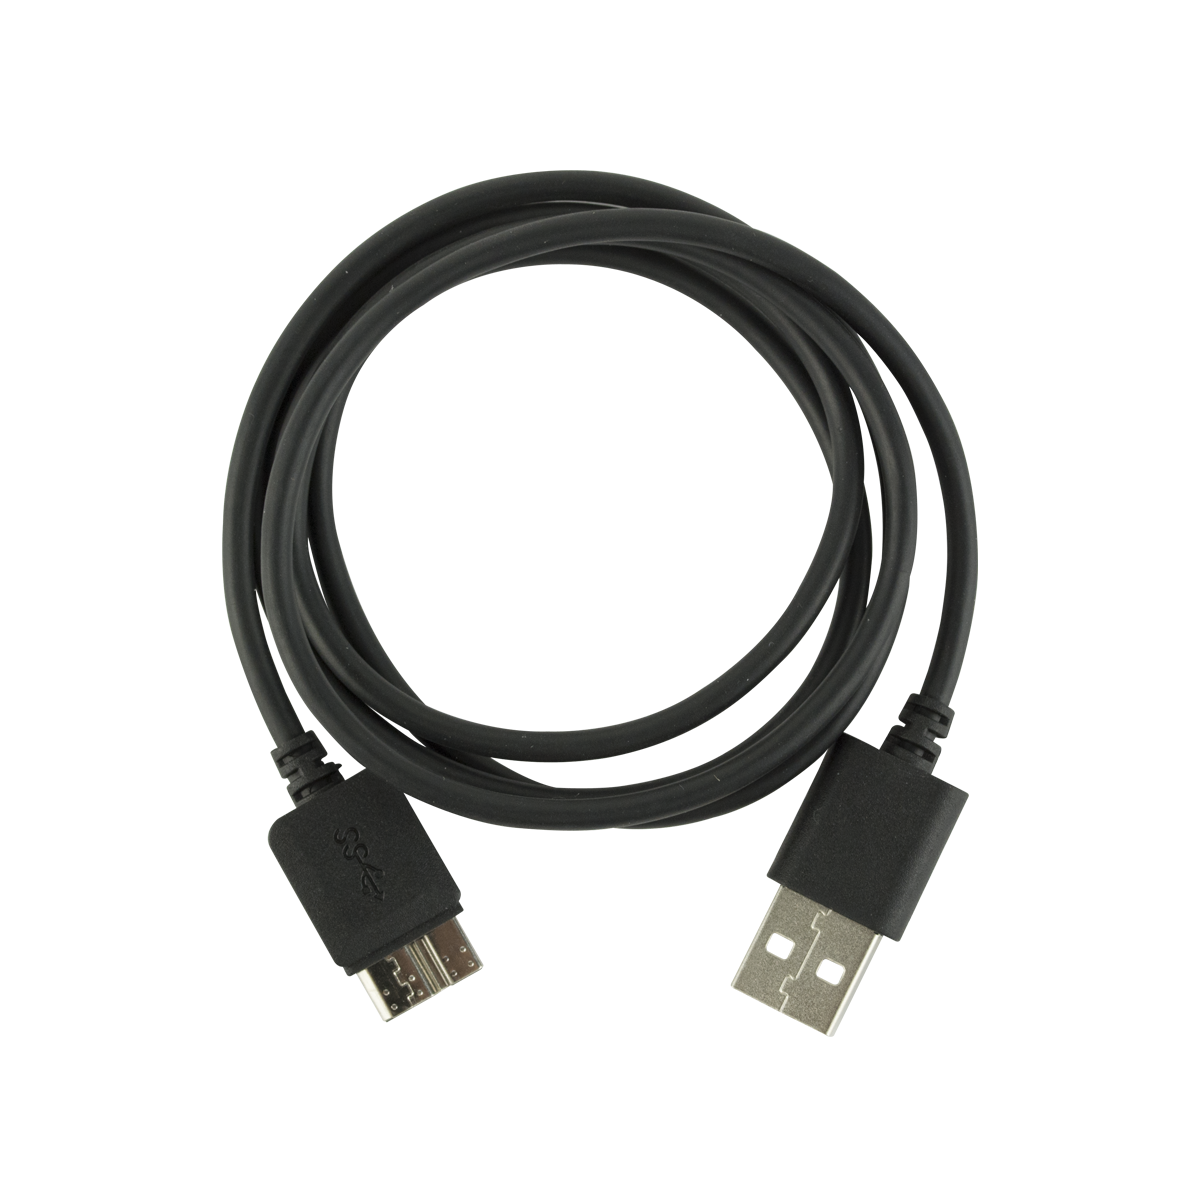 Samsung Galaxy Note 3 USB 3.0 Charging Data Cable